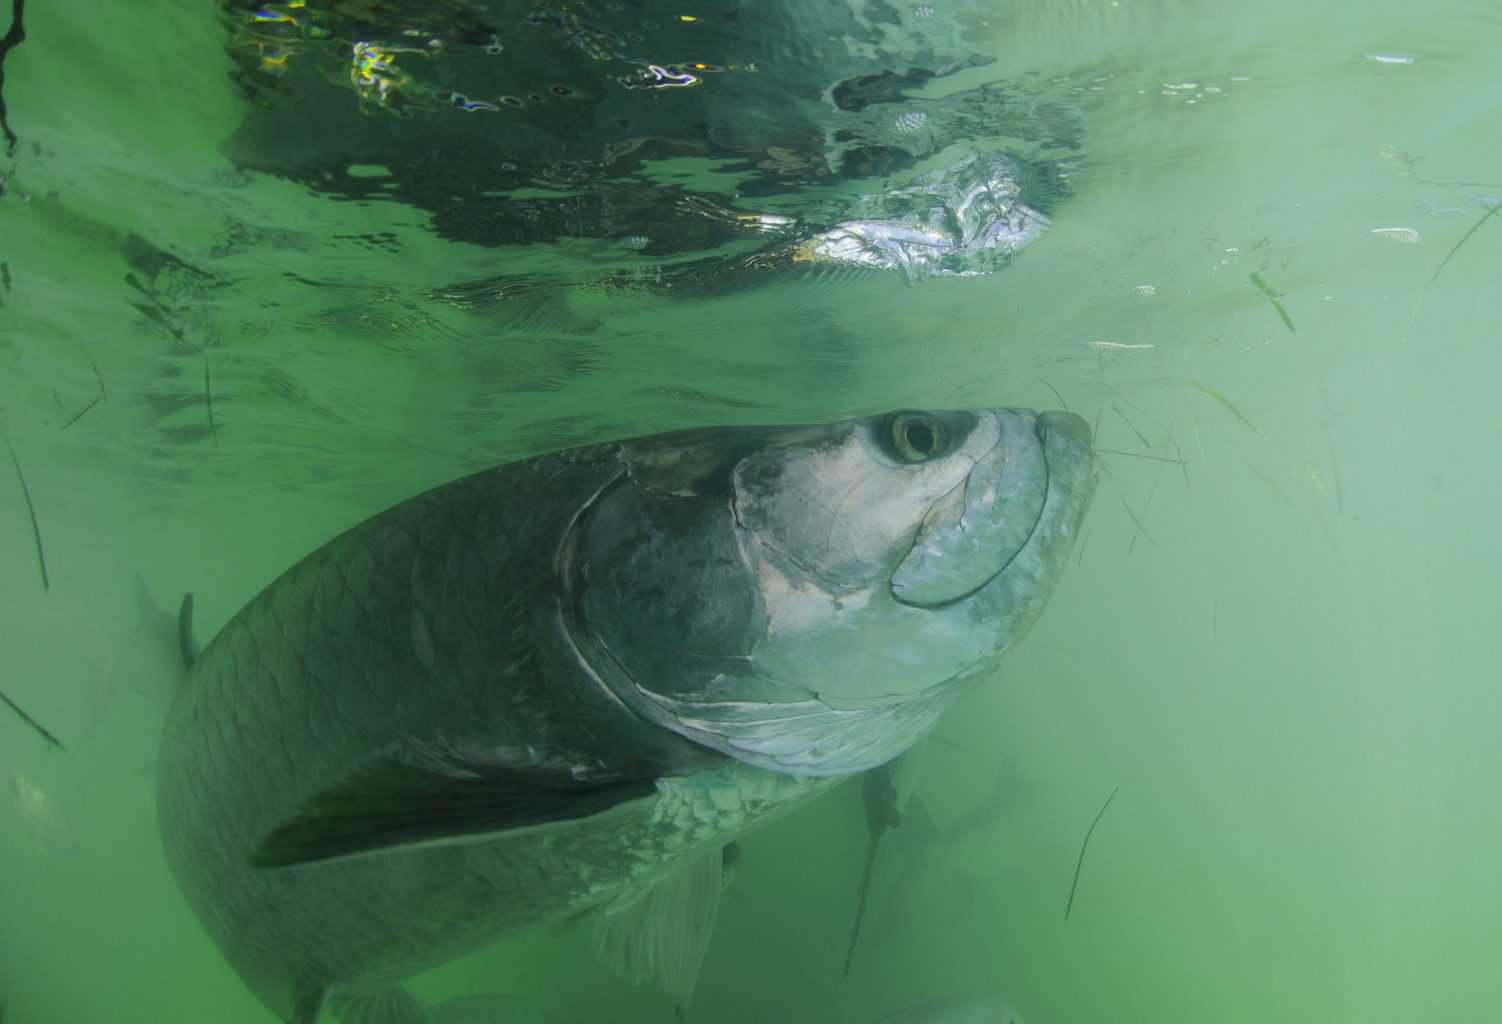 Tarpon fish in its natural haibitat off the coast of Florida in the Atlantic Ocean - what is the best time to catch tarpon?